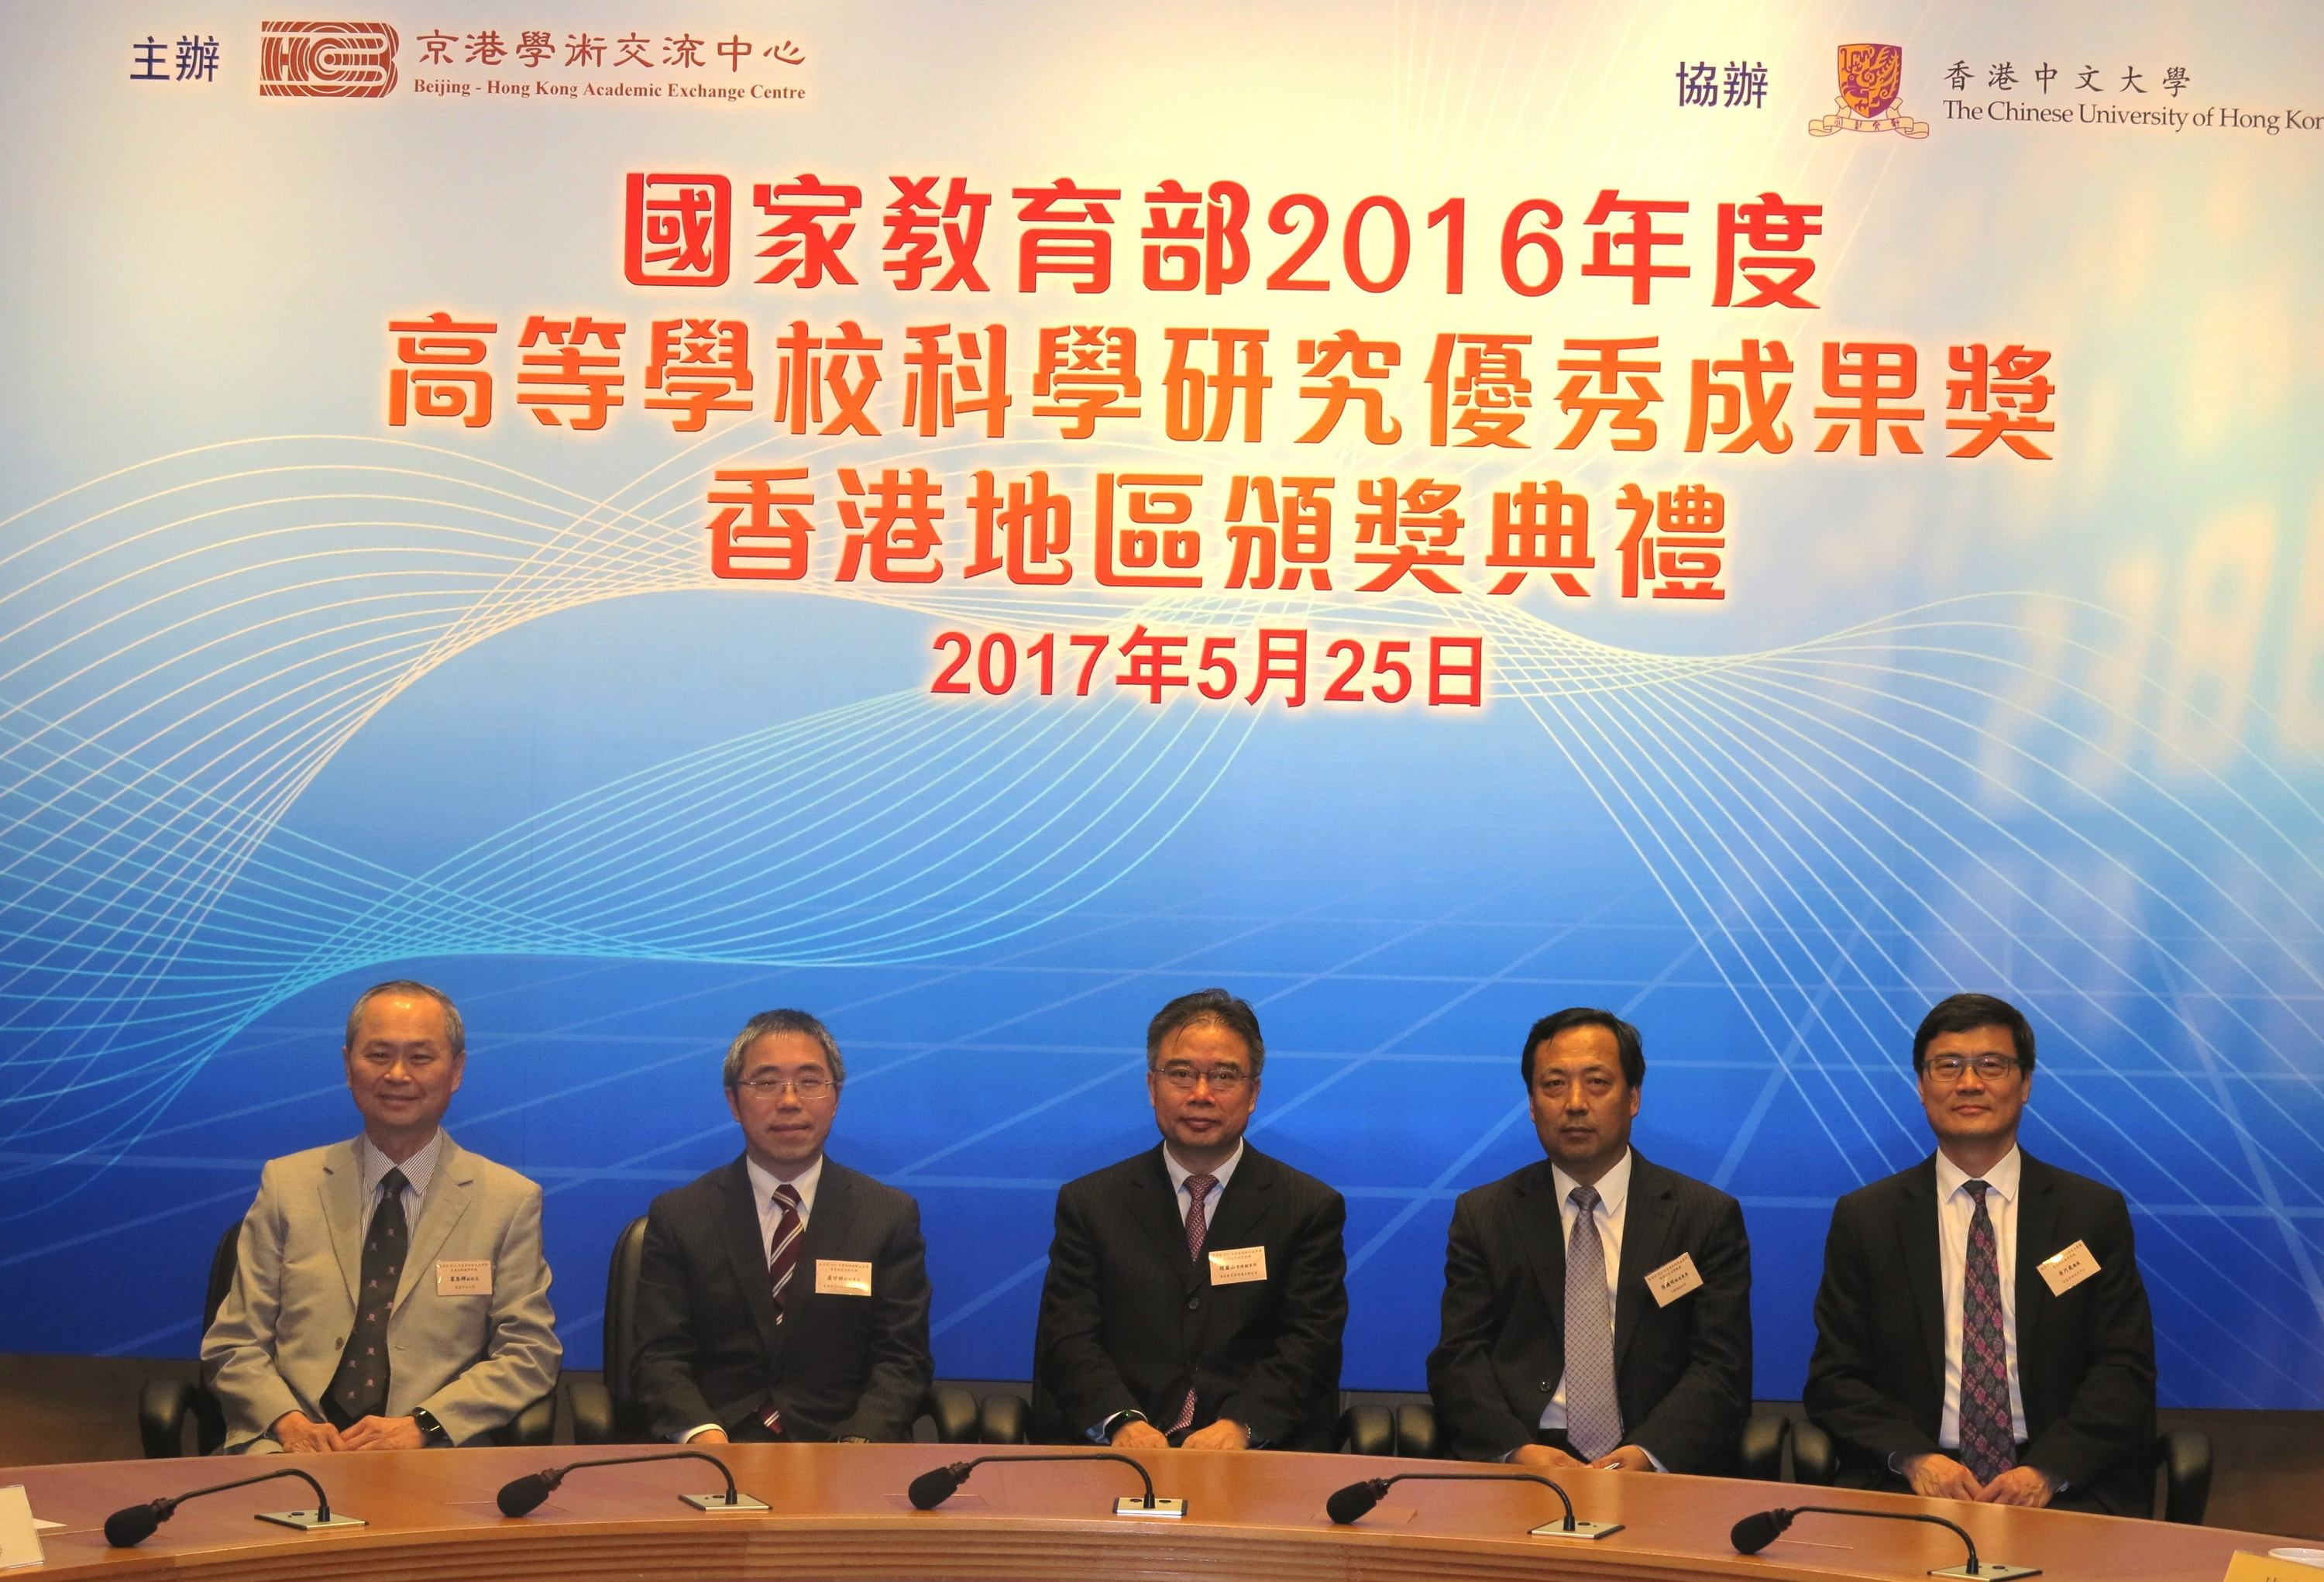 A group photo of officiating guests. (From left) Prof. Fok Tai-fai, Pro-Vice-Chancellor of CUHK; Mr. Lo Sai-hung, Brian, Deputy Secretary for Education, HKSAR Government; Mr. Zhao Ling-Shan, Deputy Director of the Office for Hong Kong, Macau and Taiwan Affairs, MoE; Mr. Zhang Zongming, Deputy Inspector of the Education, Science and Technology Department, Liaison Office of The Central People's Government in the HKSAR; and Mr. Li Nai-yiu, President of Beijing-Hong Kong Academic Exchange Centre.